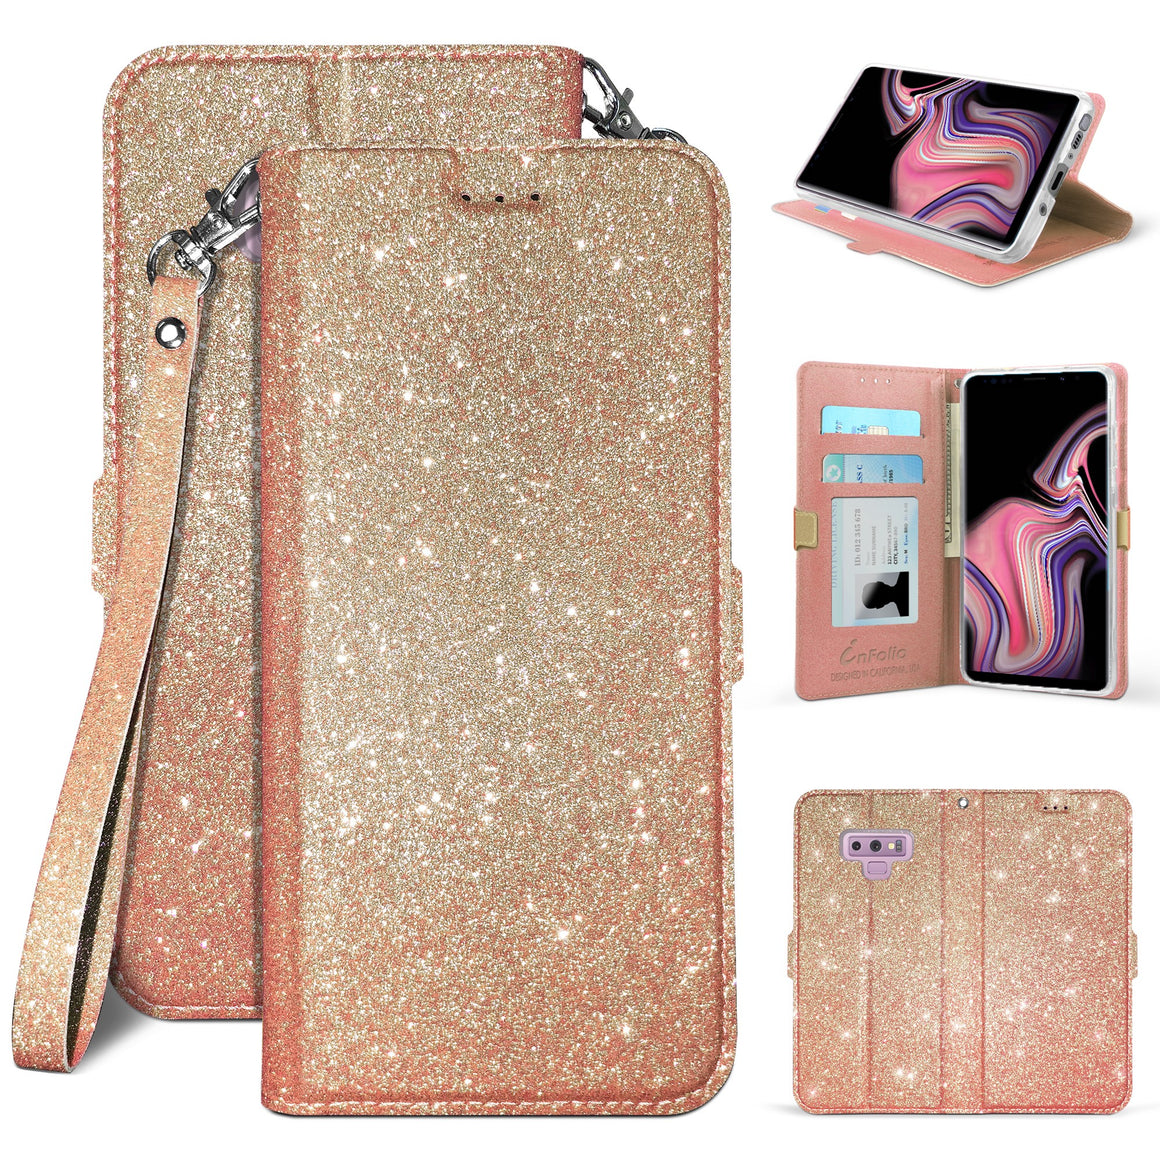 Infolio B For Samsung Galaxy Note 9 XT1922 XT1925 Rose Gold